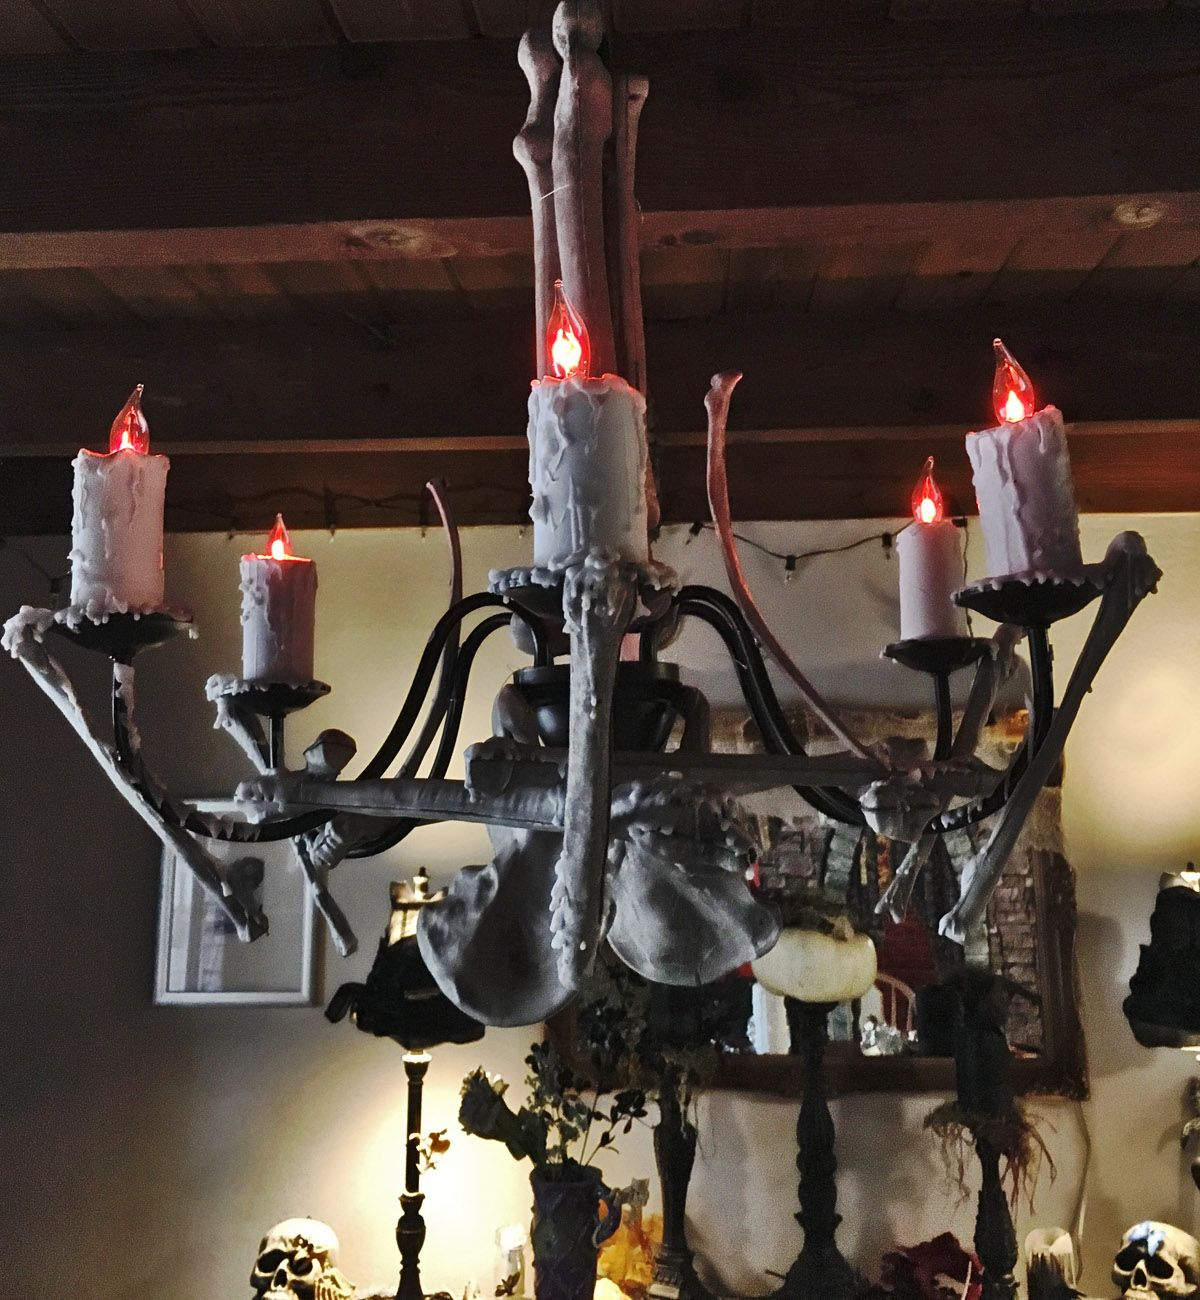 Bone chandelier inspired by my visit to kutna hora sedlec ossuary bone chandelier inspired by my visit to kutna hora sedlec ossuary thebonechurch aloadofball Image collections